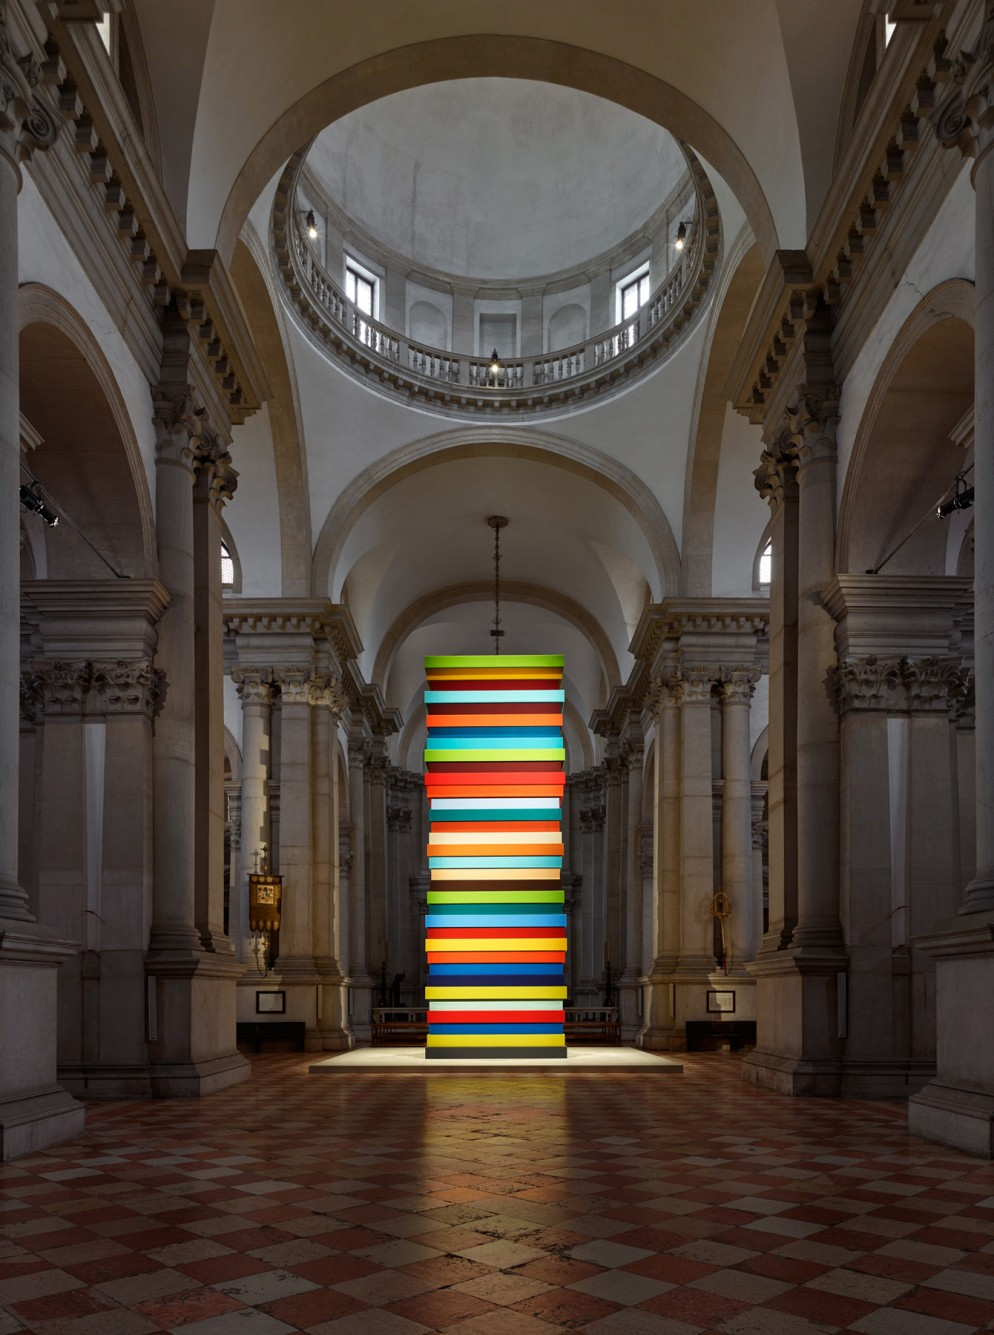 1. Sean Scully, Opulent Ascension, 2019